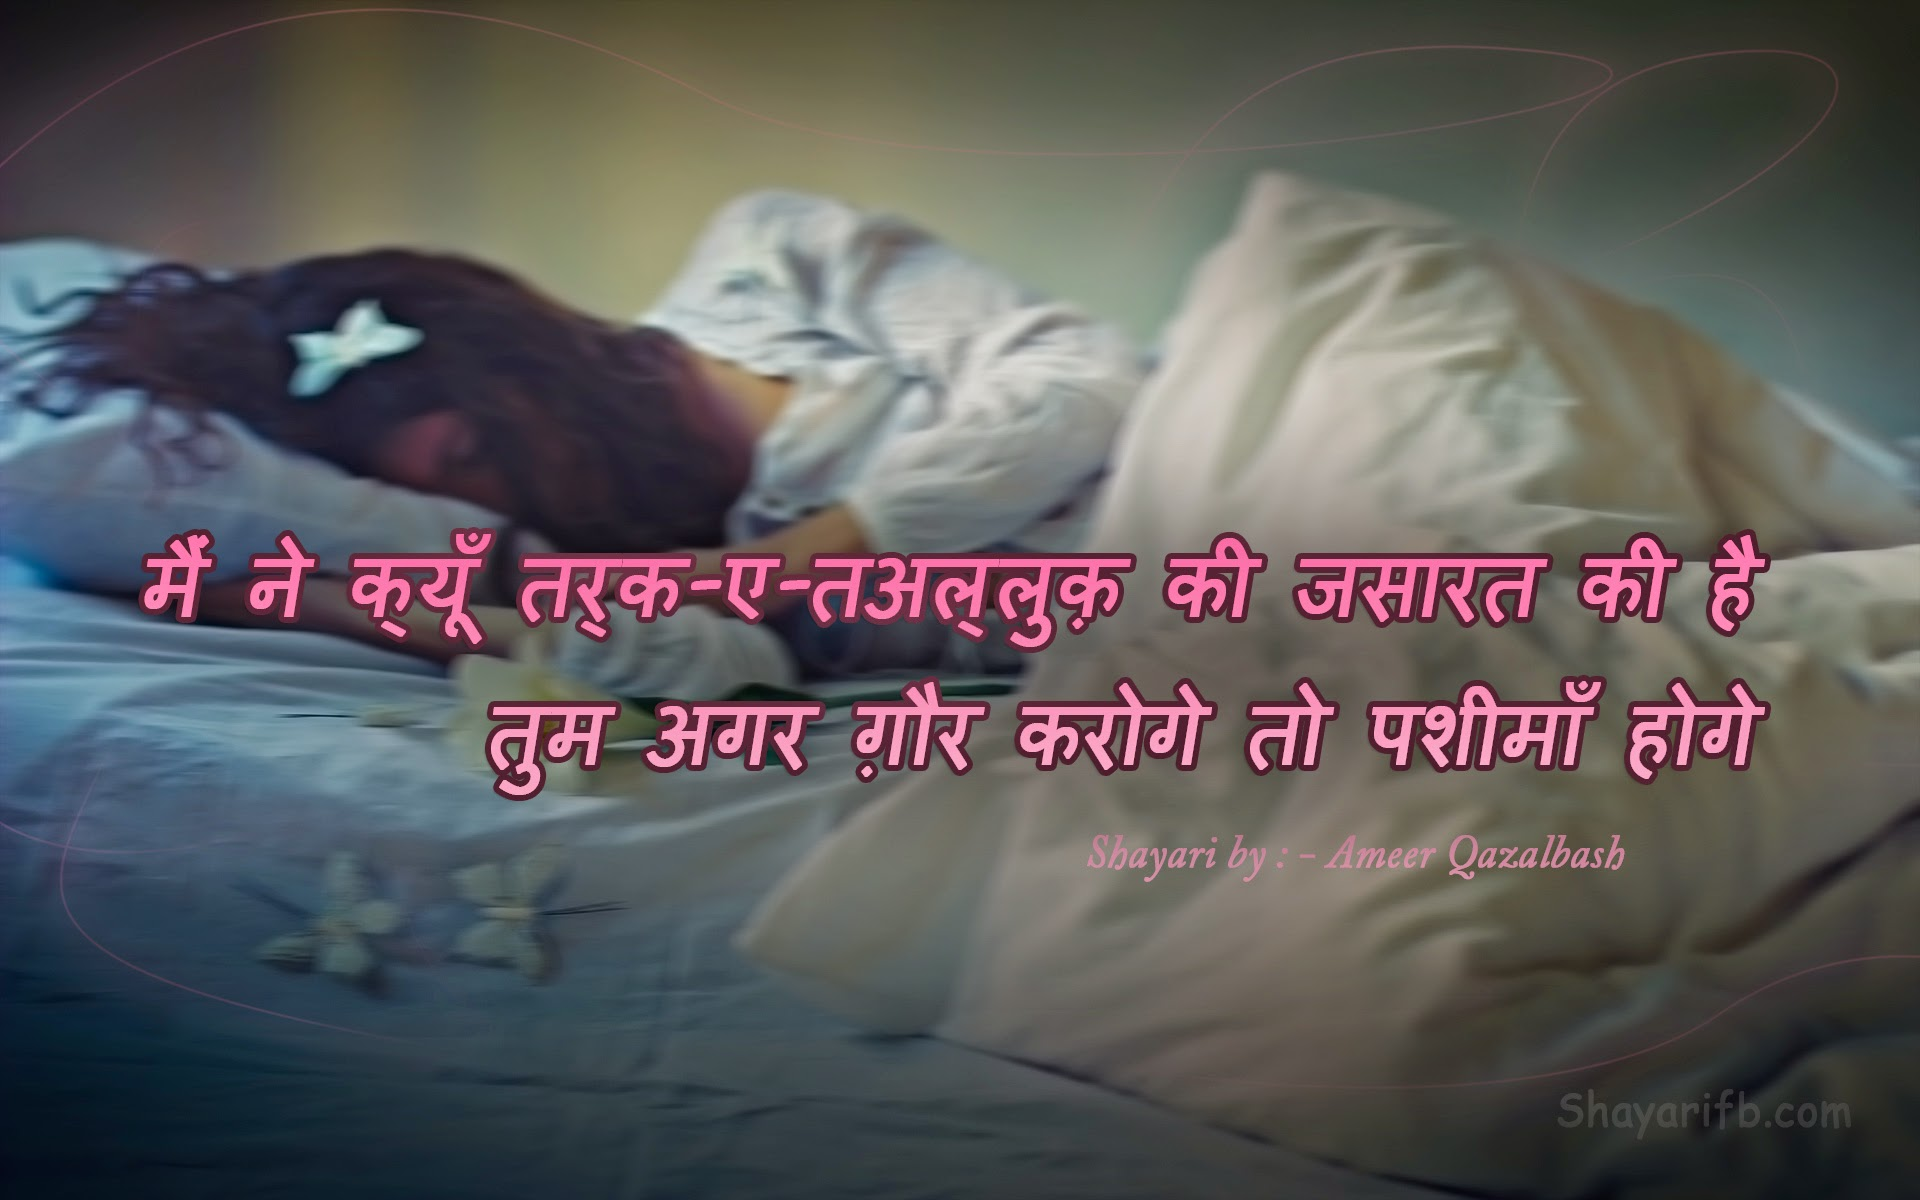 Love Wallpaper And Shayri : Love shayari wallpaper shayari in HindiLove Shayari and ...